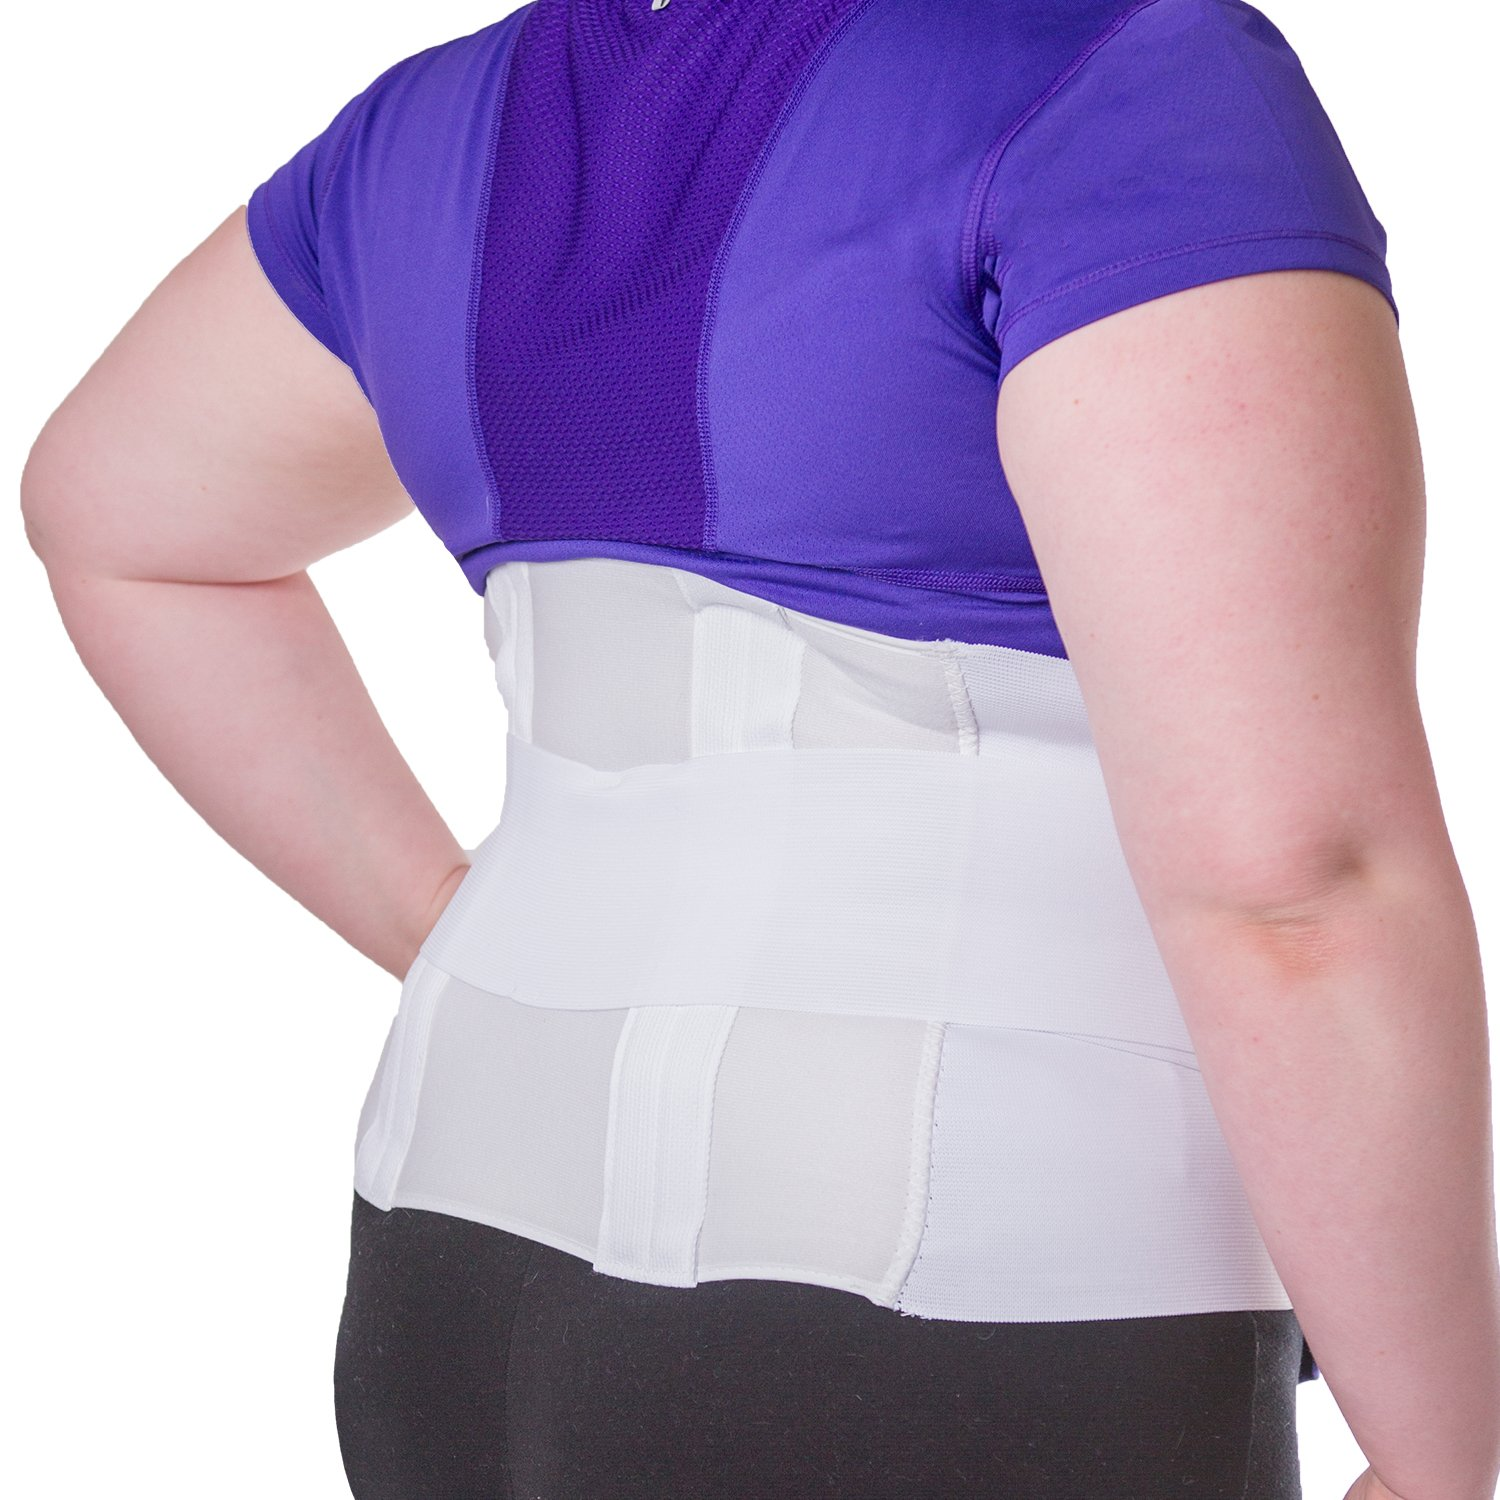 BraceAbility Plus Size 4XL Bariatric Back Brace | XXXXL Big & Tall Lumbar Support Girdle for Obesity Lower Back Pain in Extra Large, Heavy or Overweight Men and Women (Fits 60''-68'' Hips)